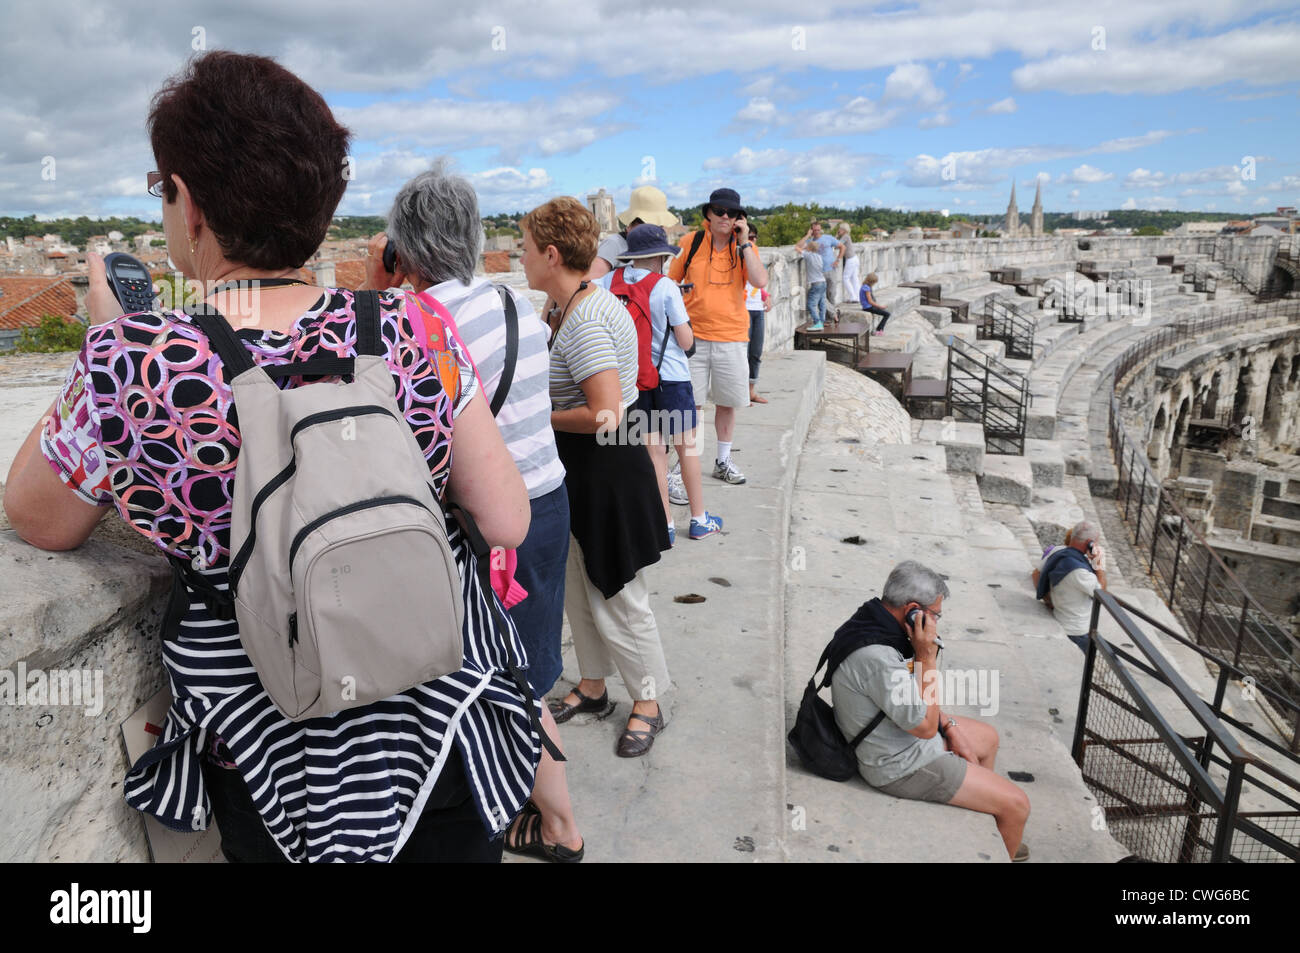 Tourists using mobile phones inside Roman amphitheatre or arena Nimes France showing obsession with modern communications - Stock Image